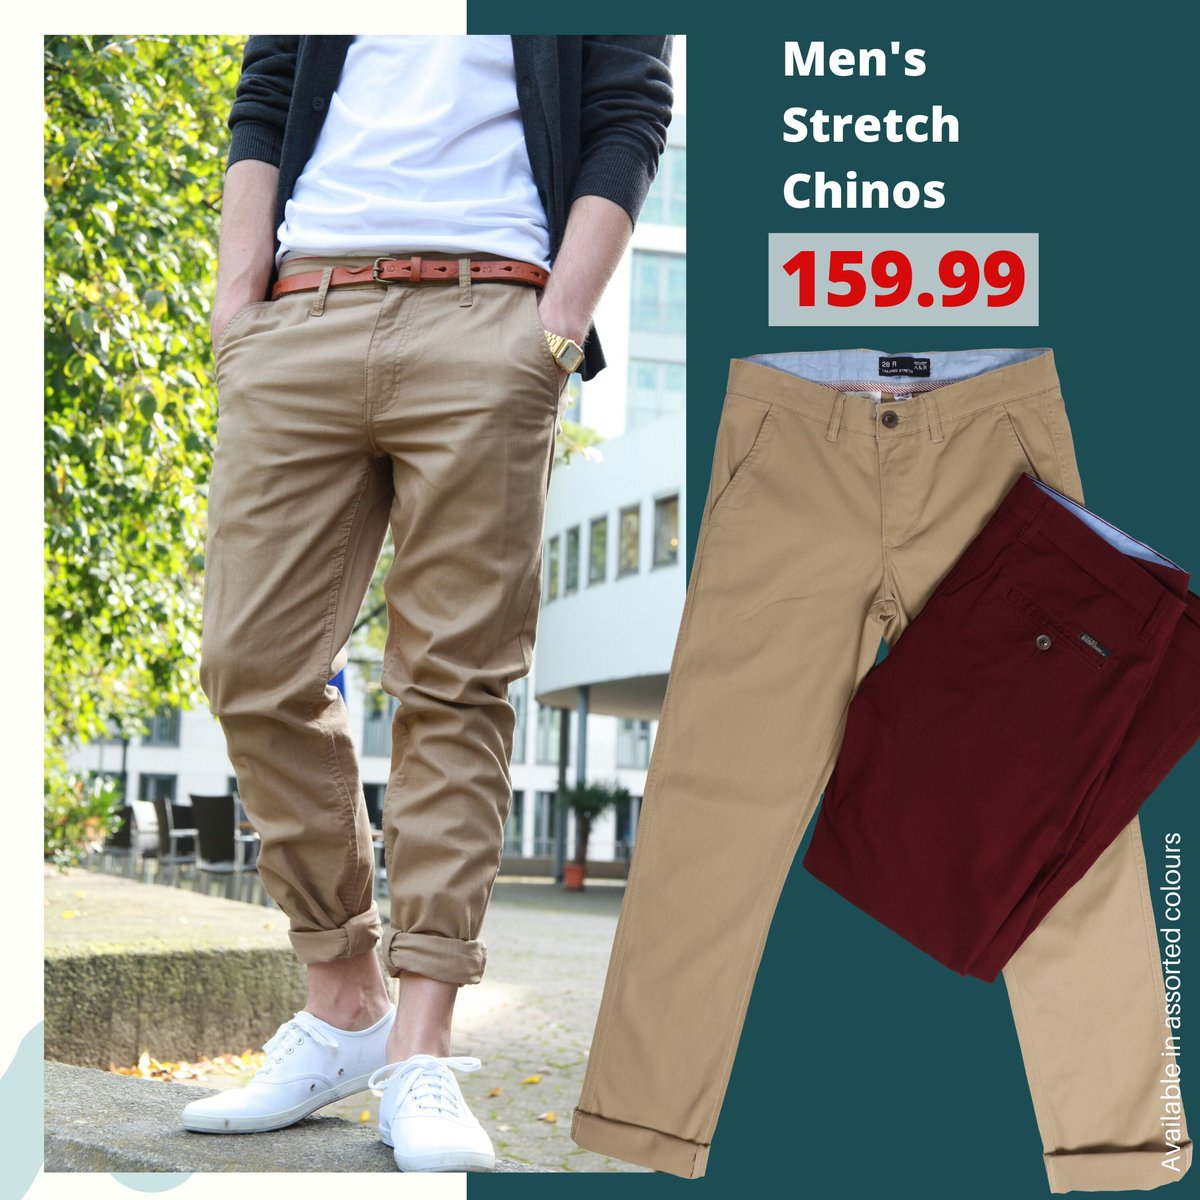 Men's Stretch Chinos 159.99  Available in assorted colours. #choiceclothing #wearchoice #menswear #chinos